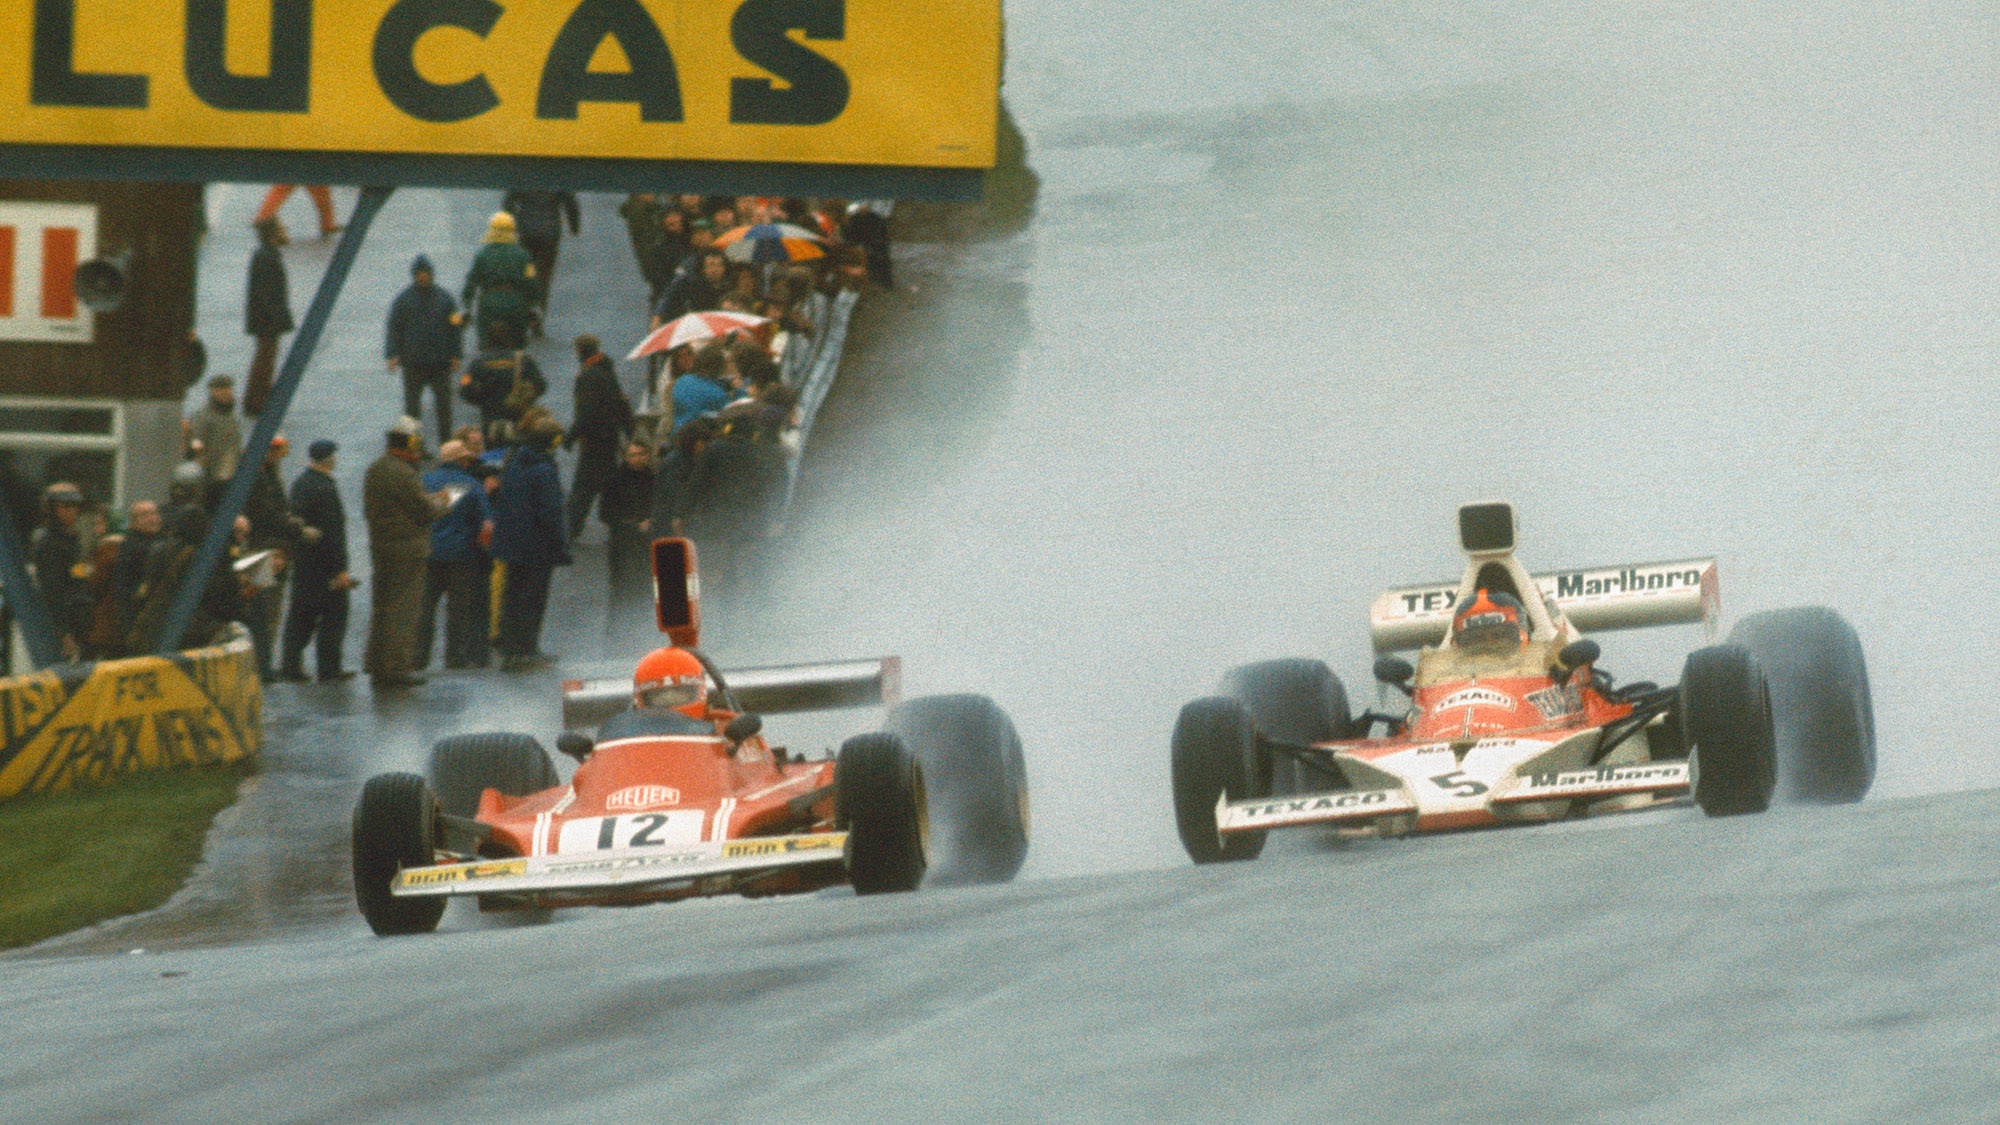 Emerson Fittipaldi and Nicki Lauda in the 1974 Race of Champions